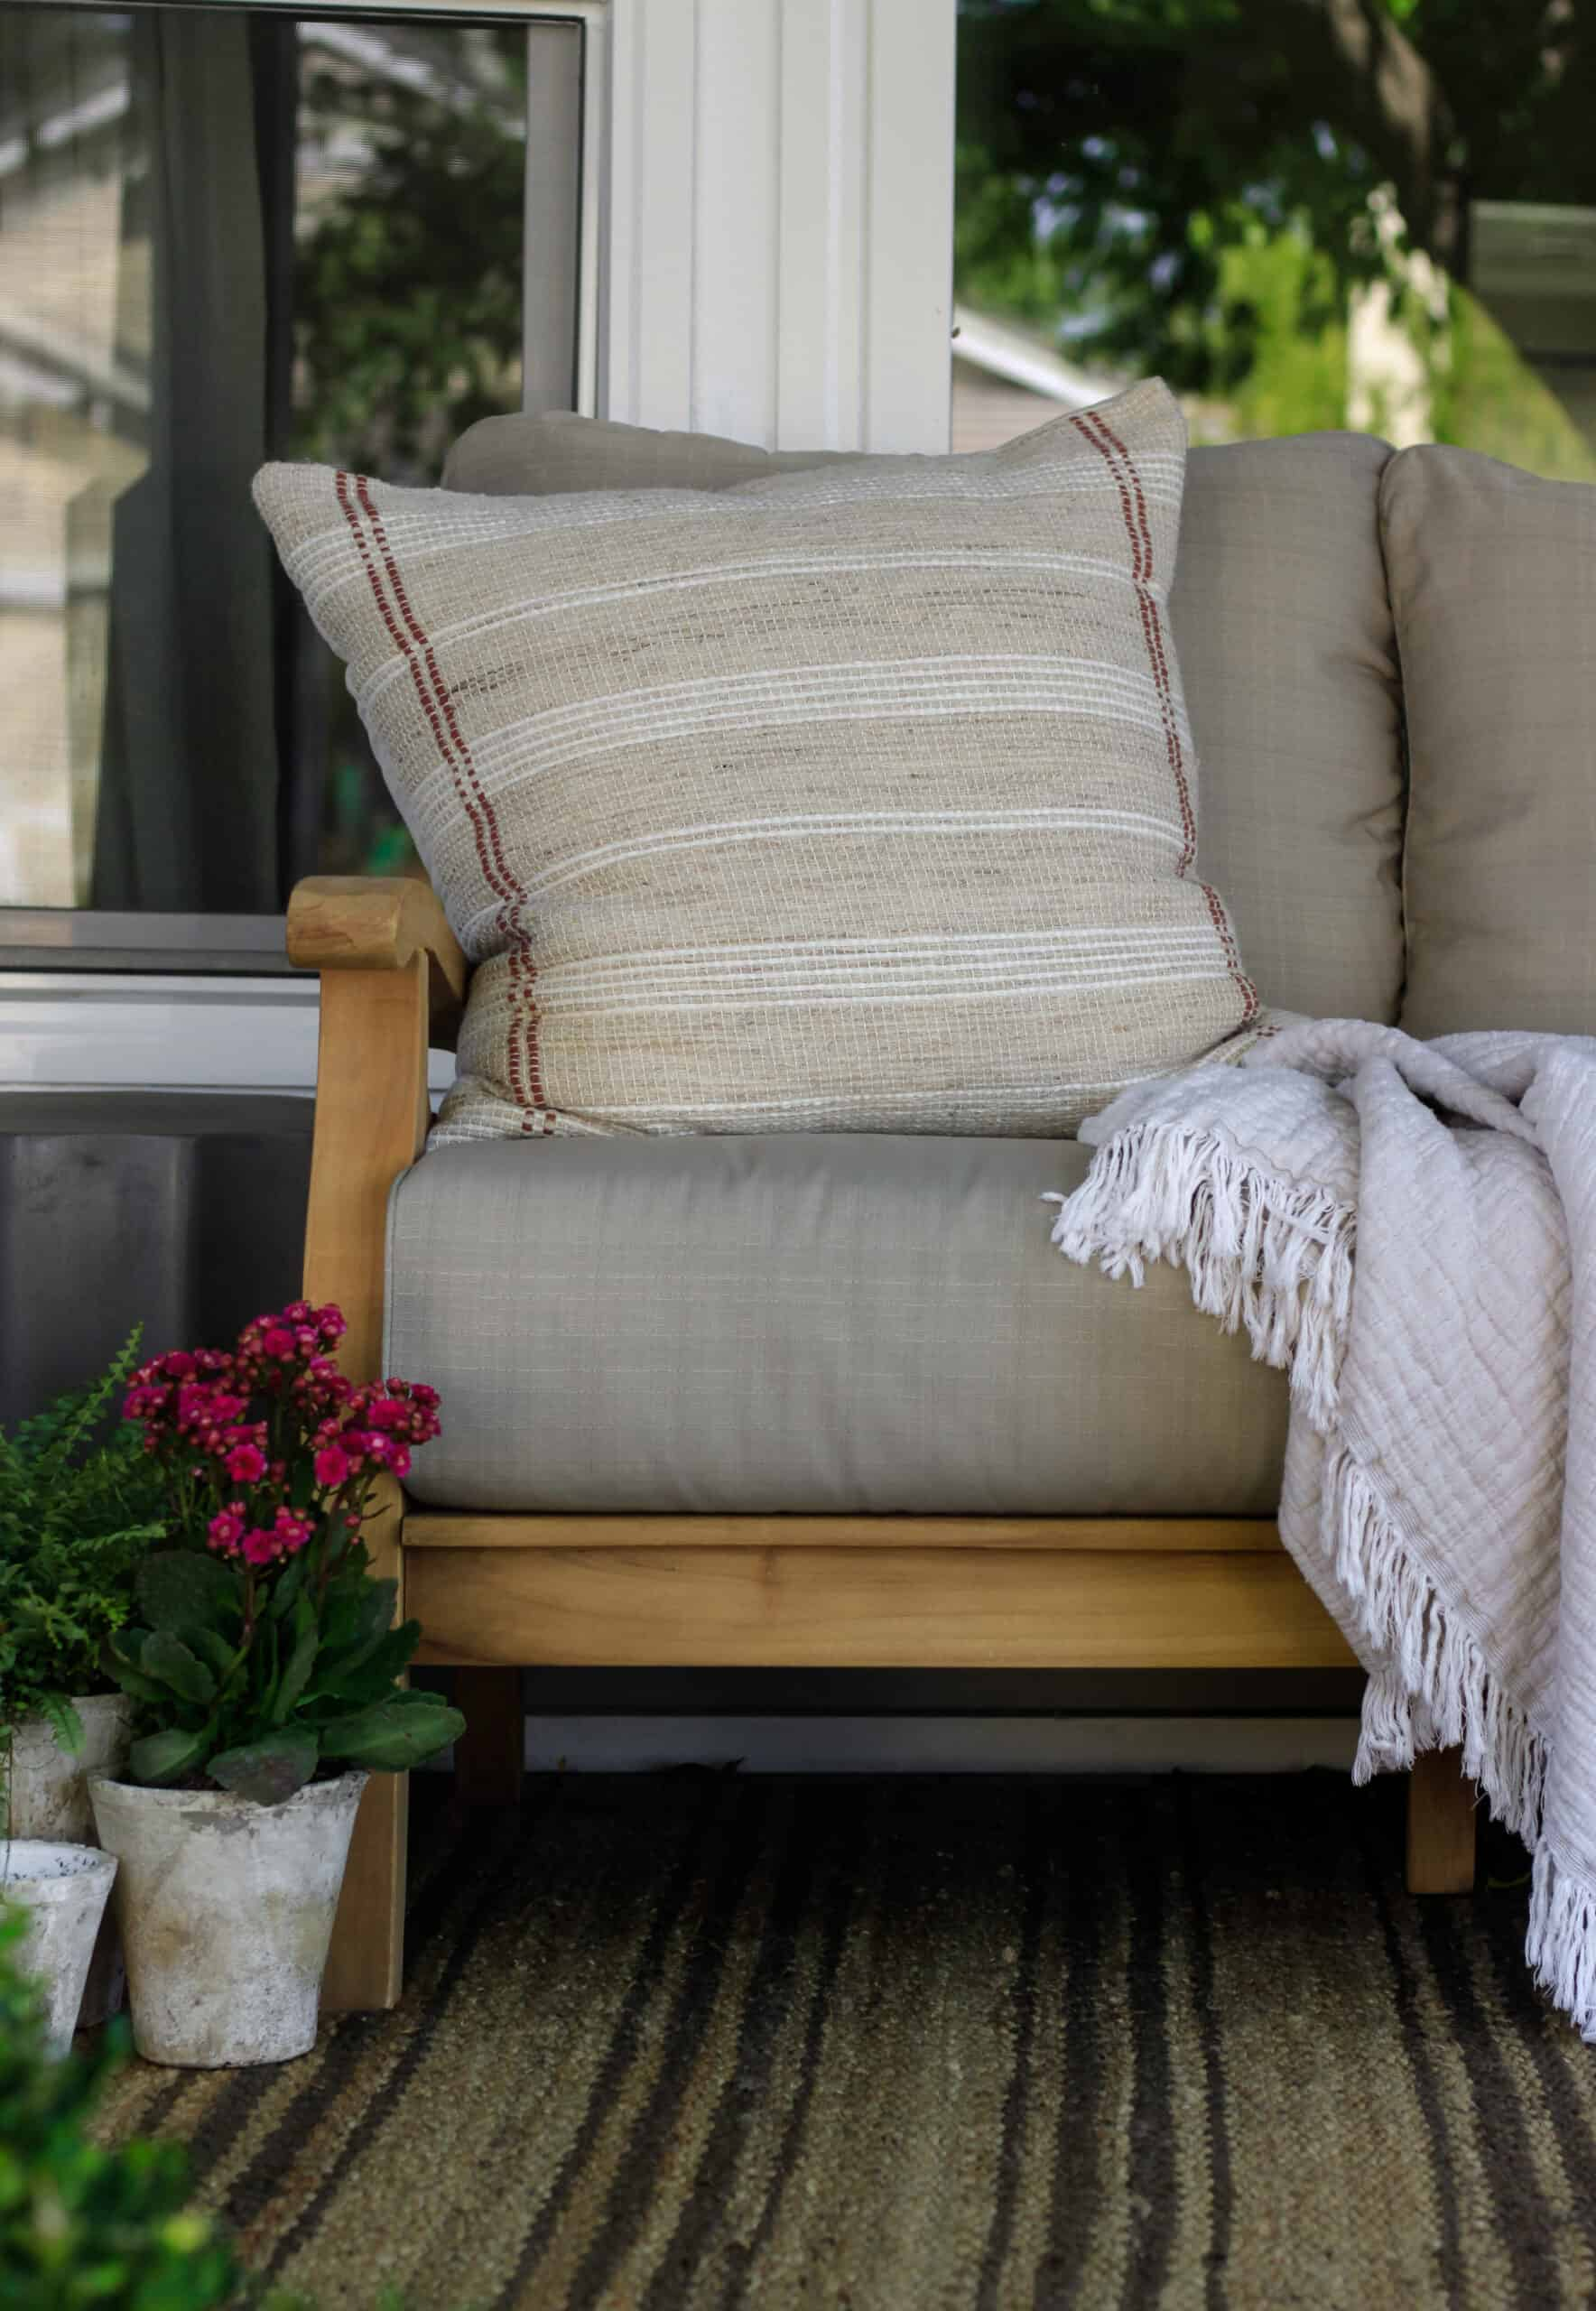 frontal view of porch bench with large pillow and blanket